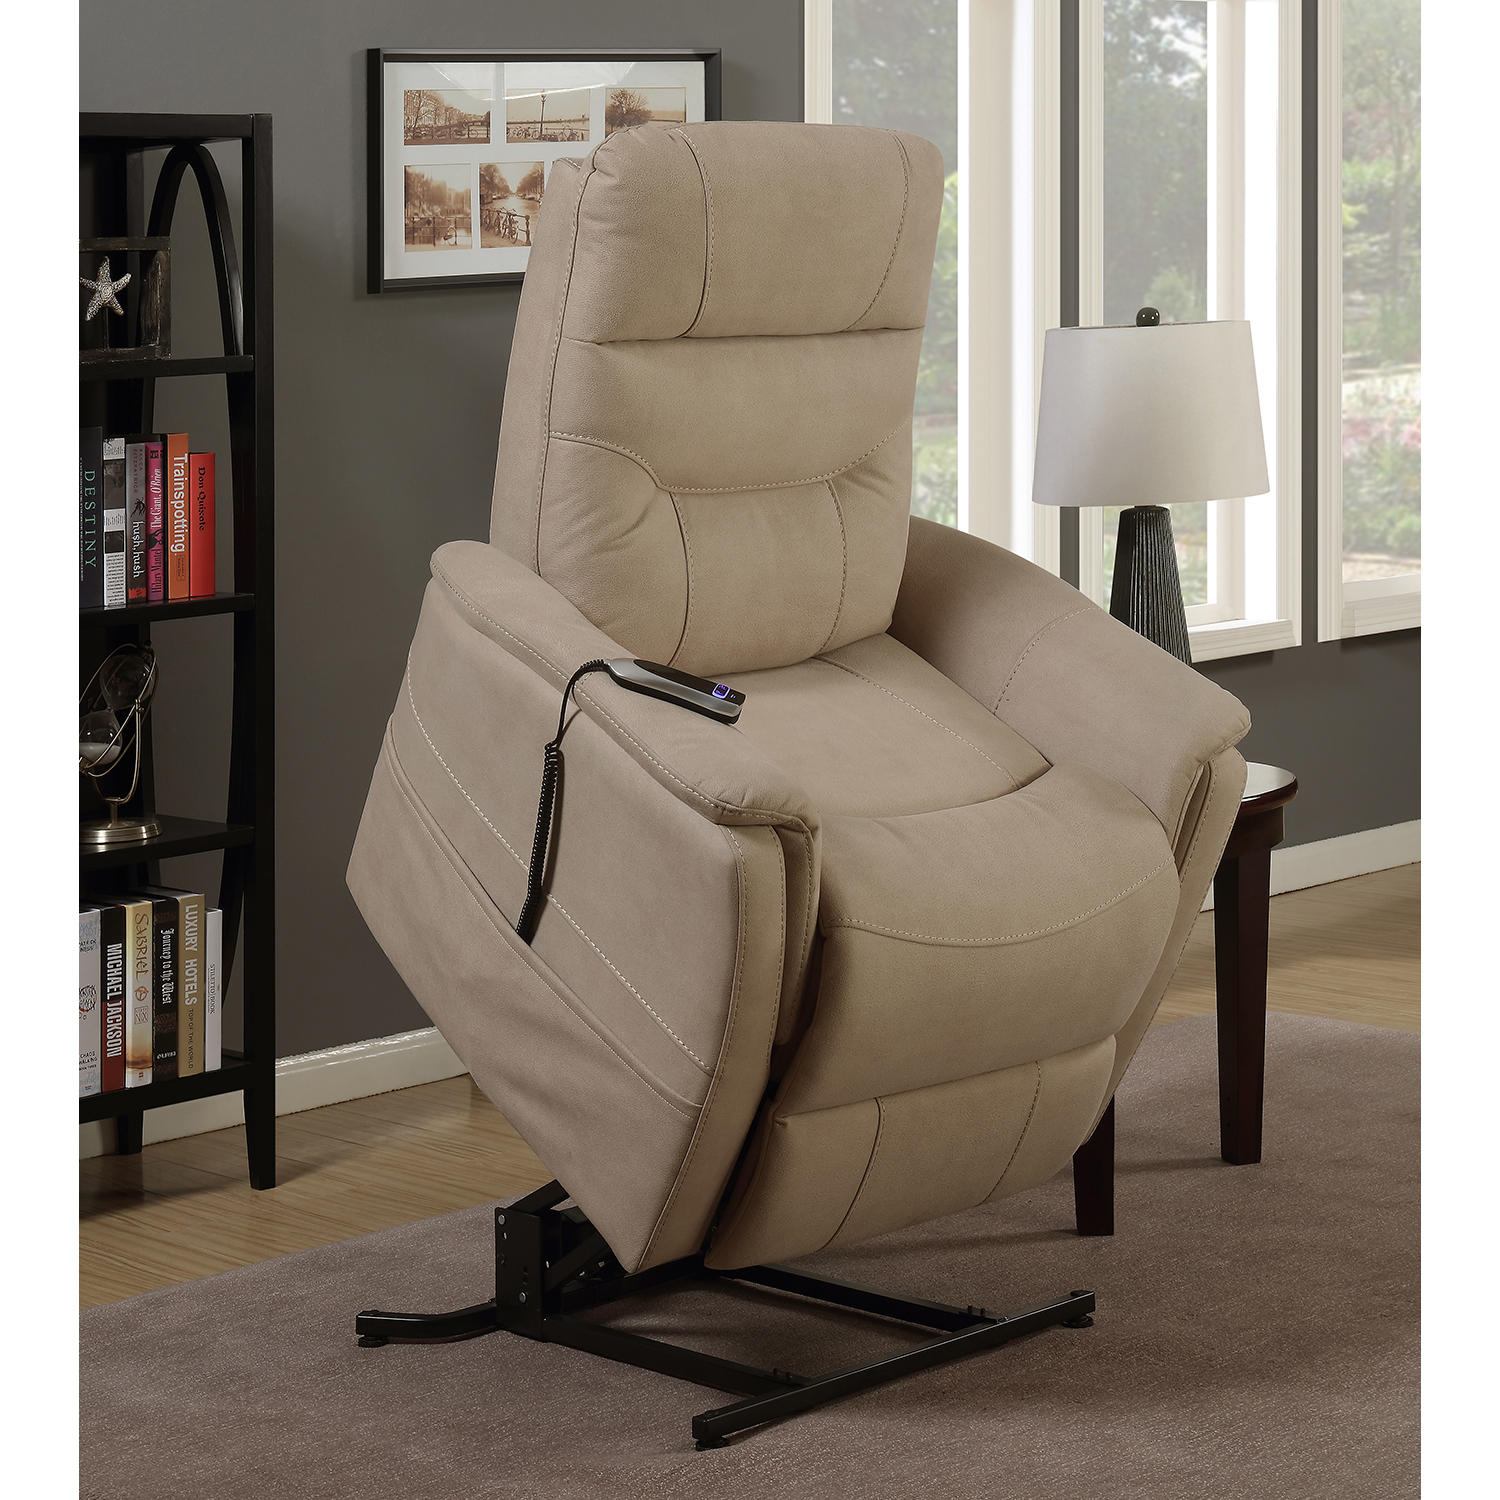 Abbey Lift Chair with USB